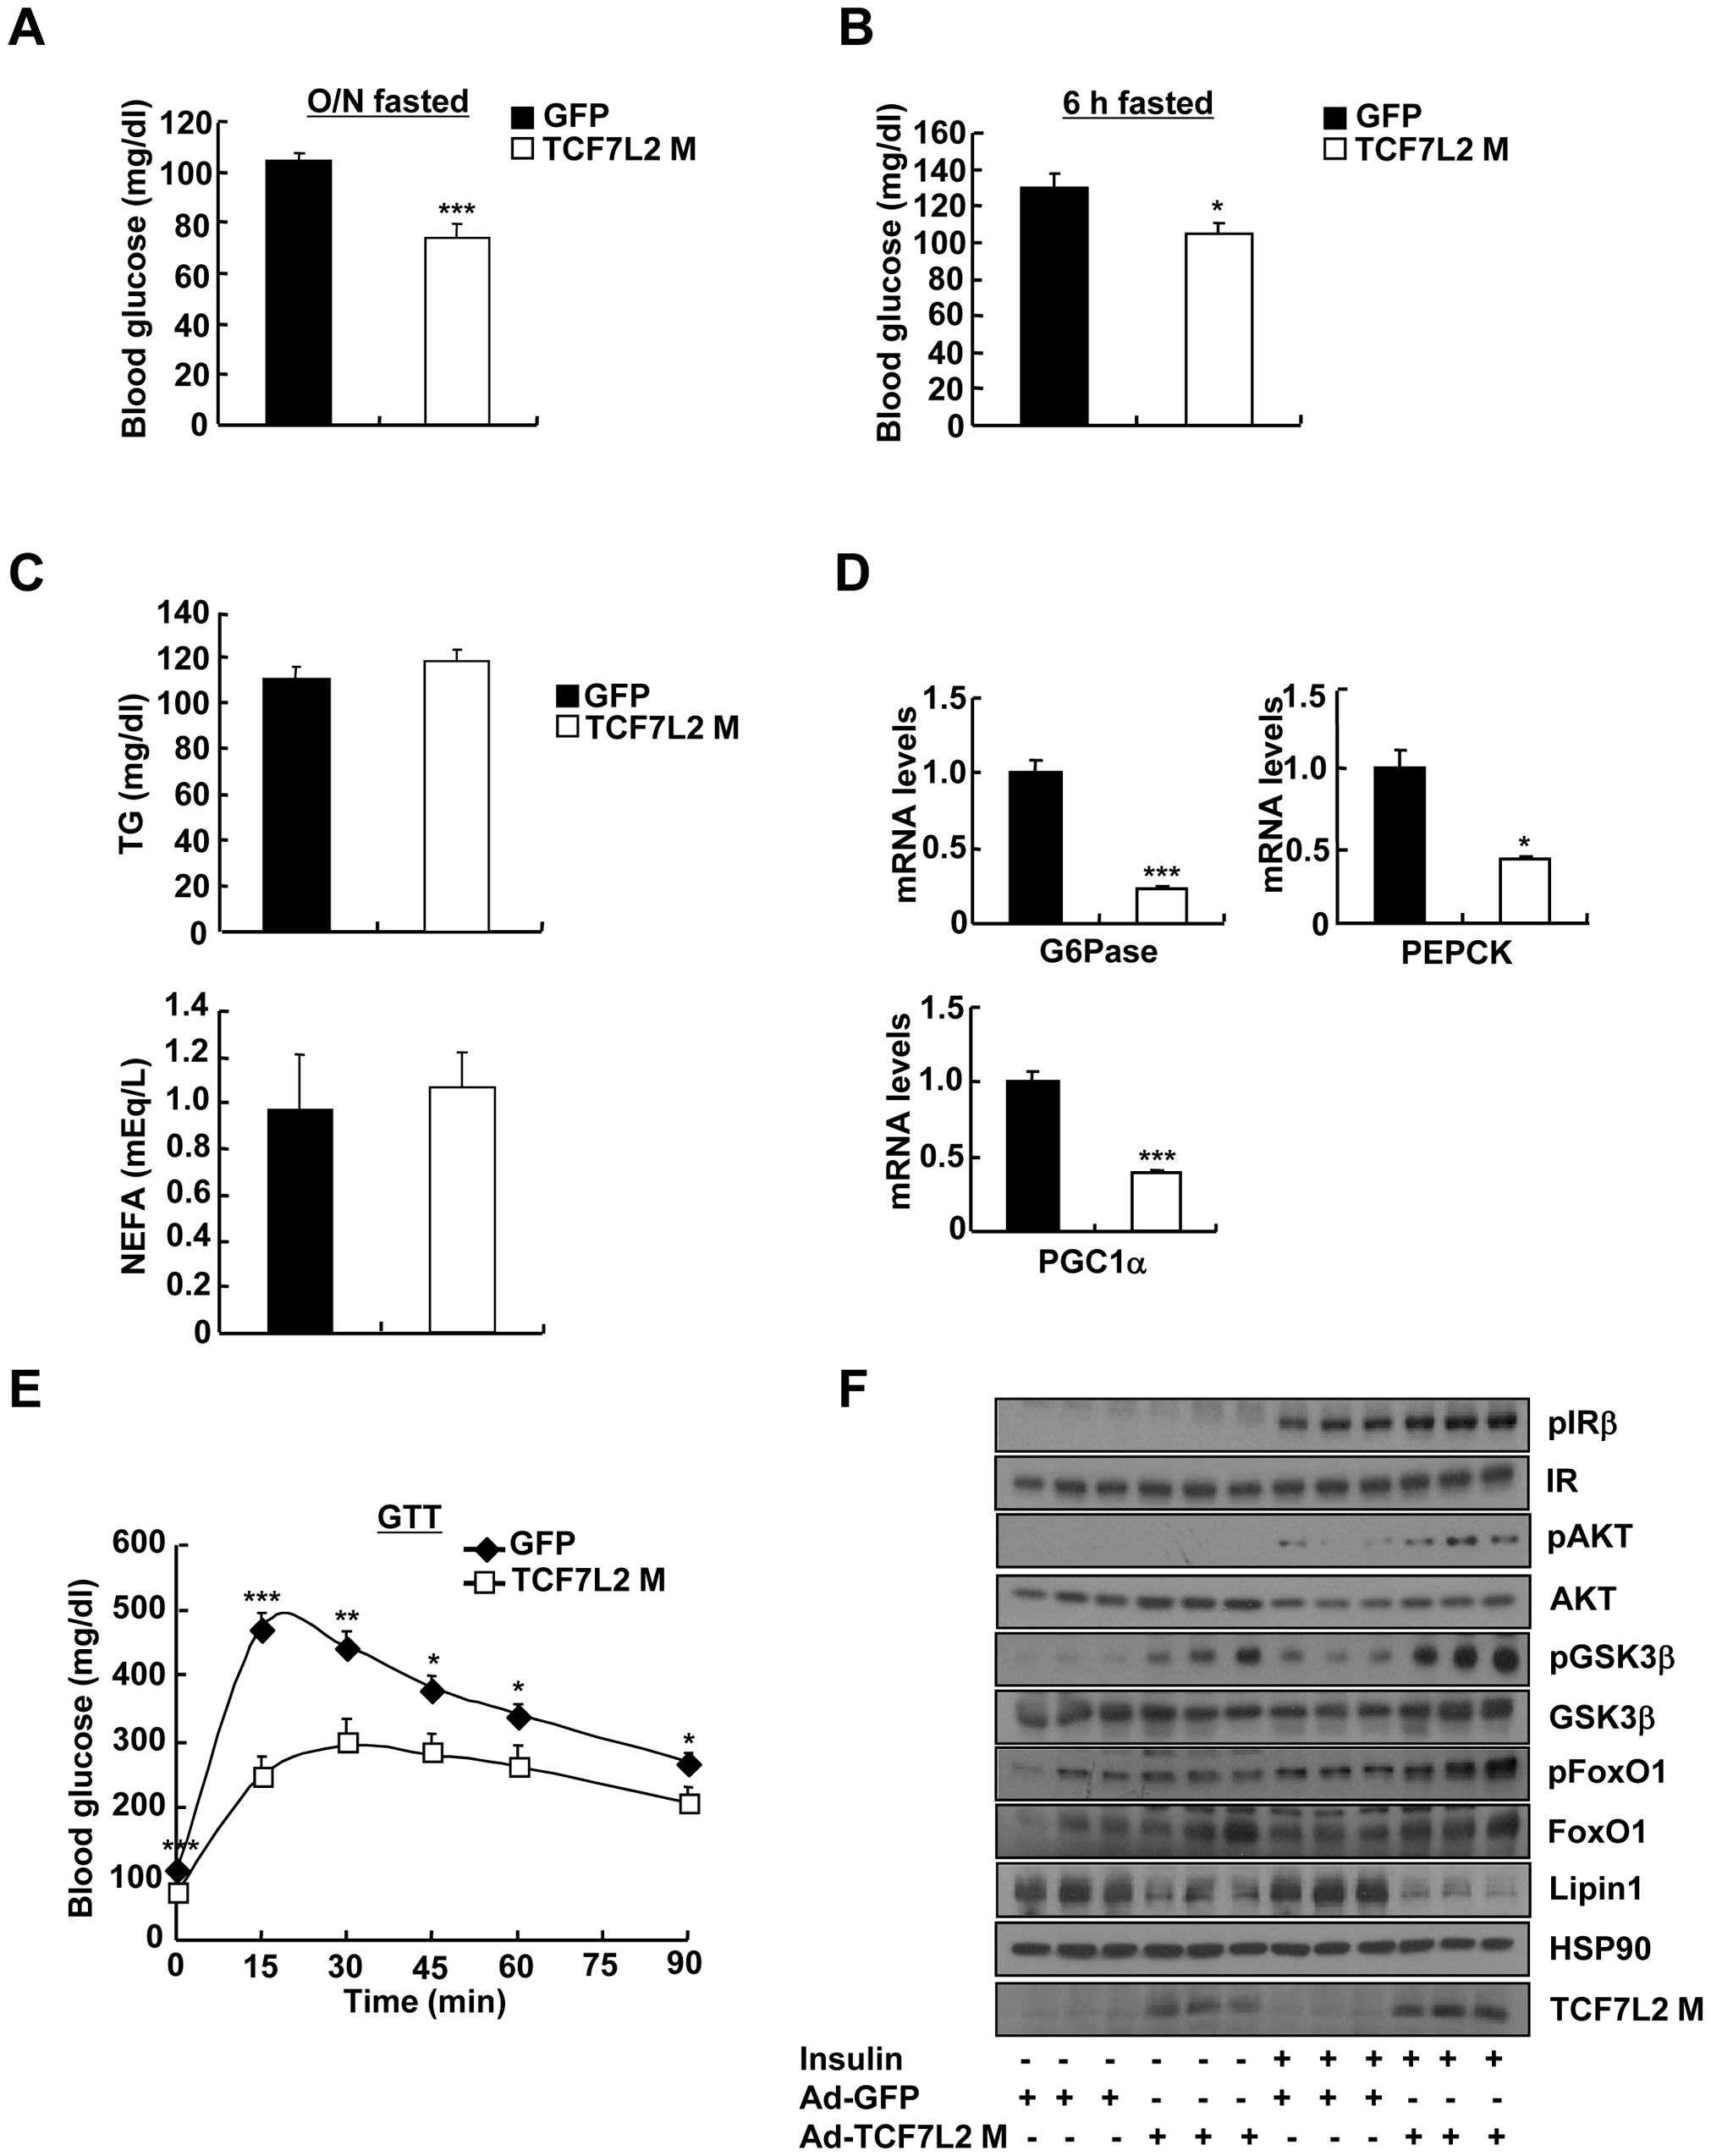 Ectopic expression of TCF7L2 in the liver alleviates impaired glucose metabolism in high-fat diet-fed mice.